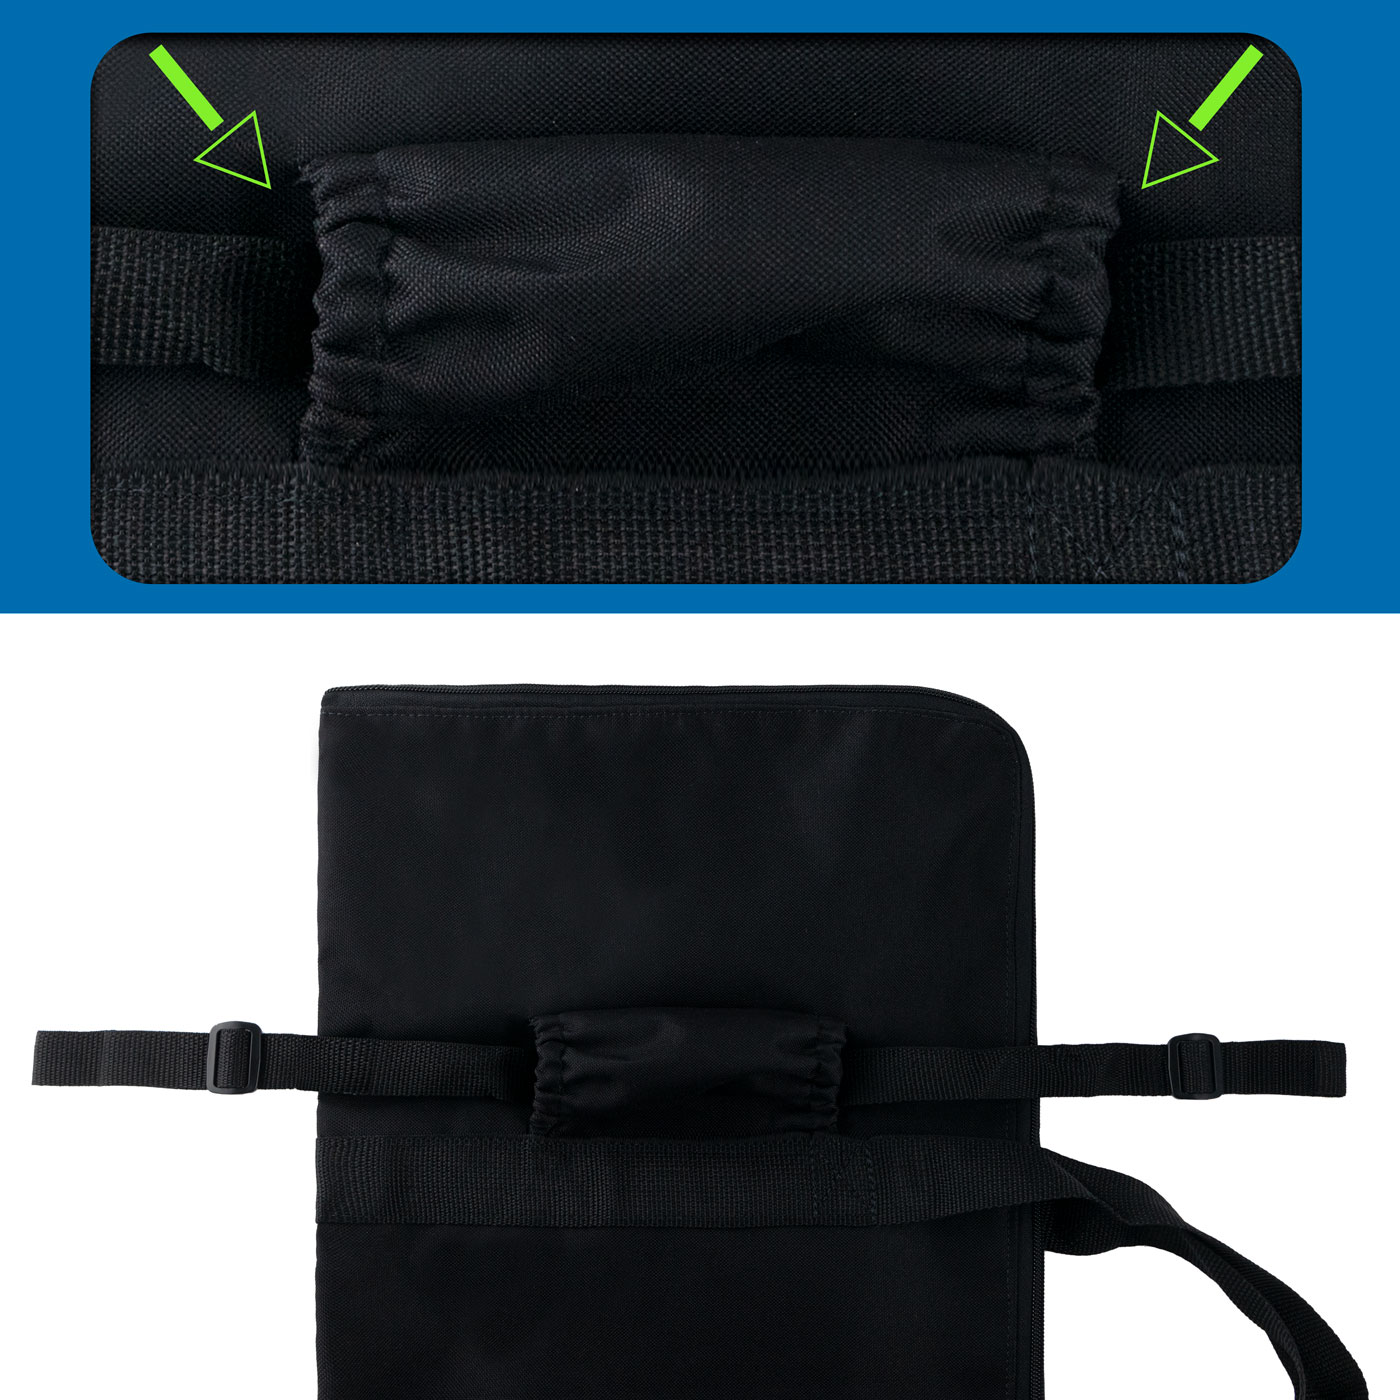 New Beasy carry case with straps insert image